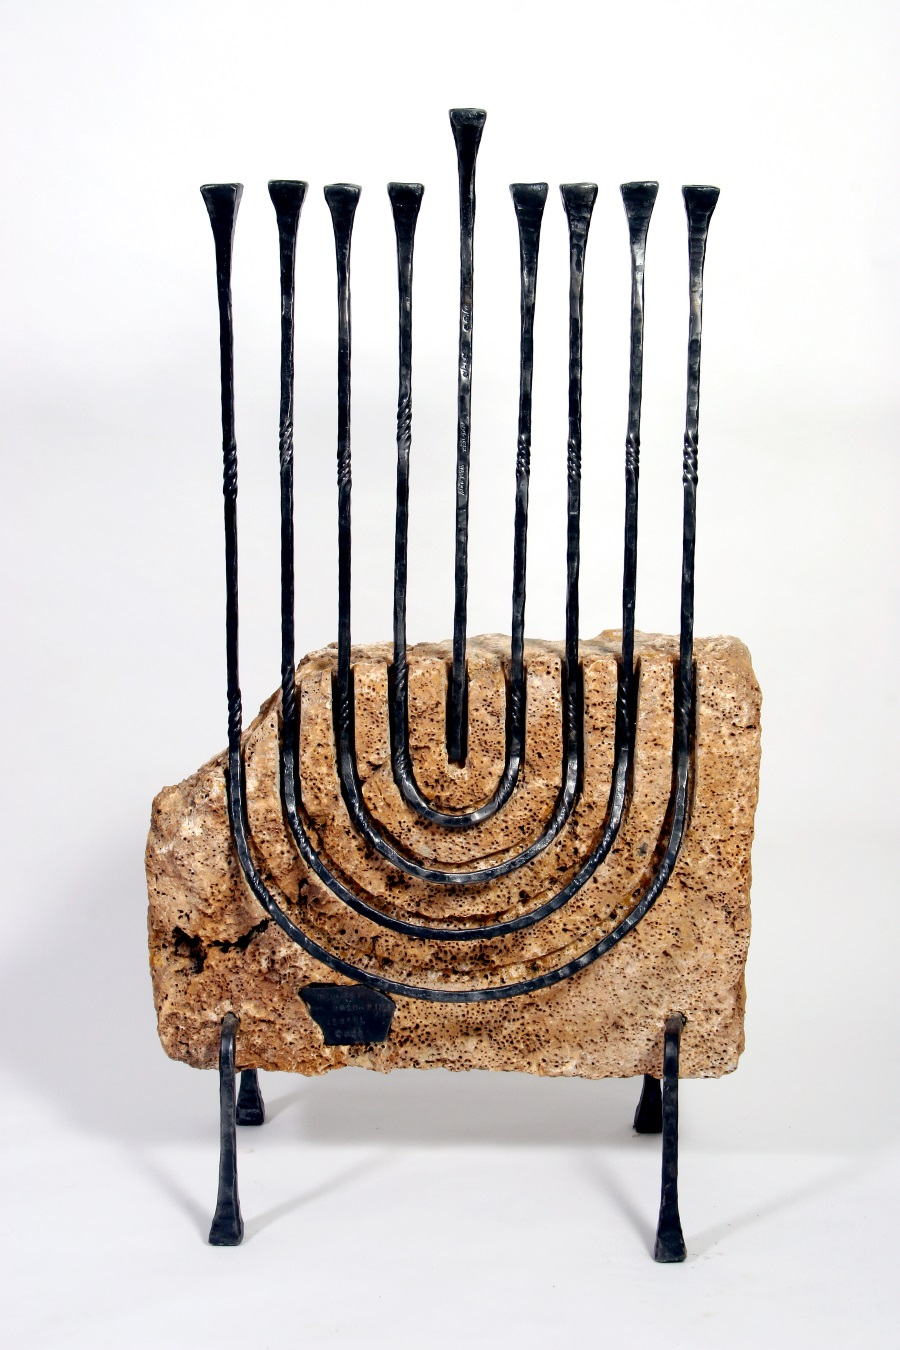 Hanucka Menorahs